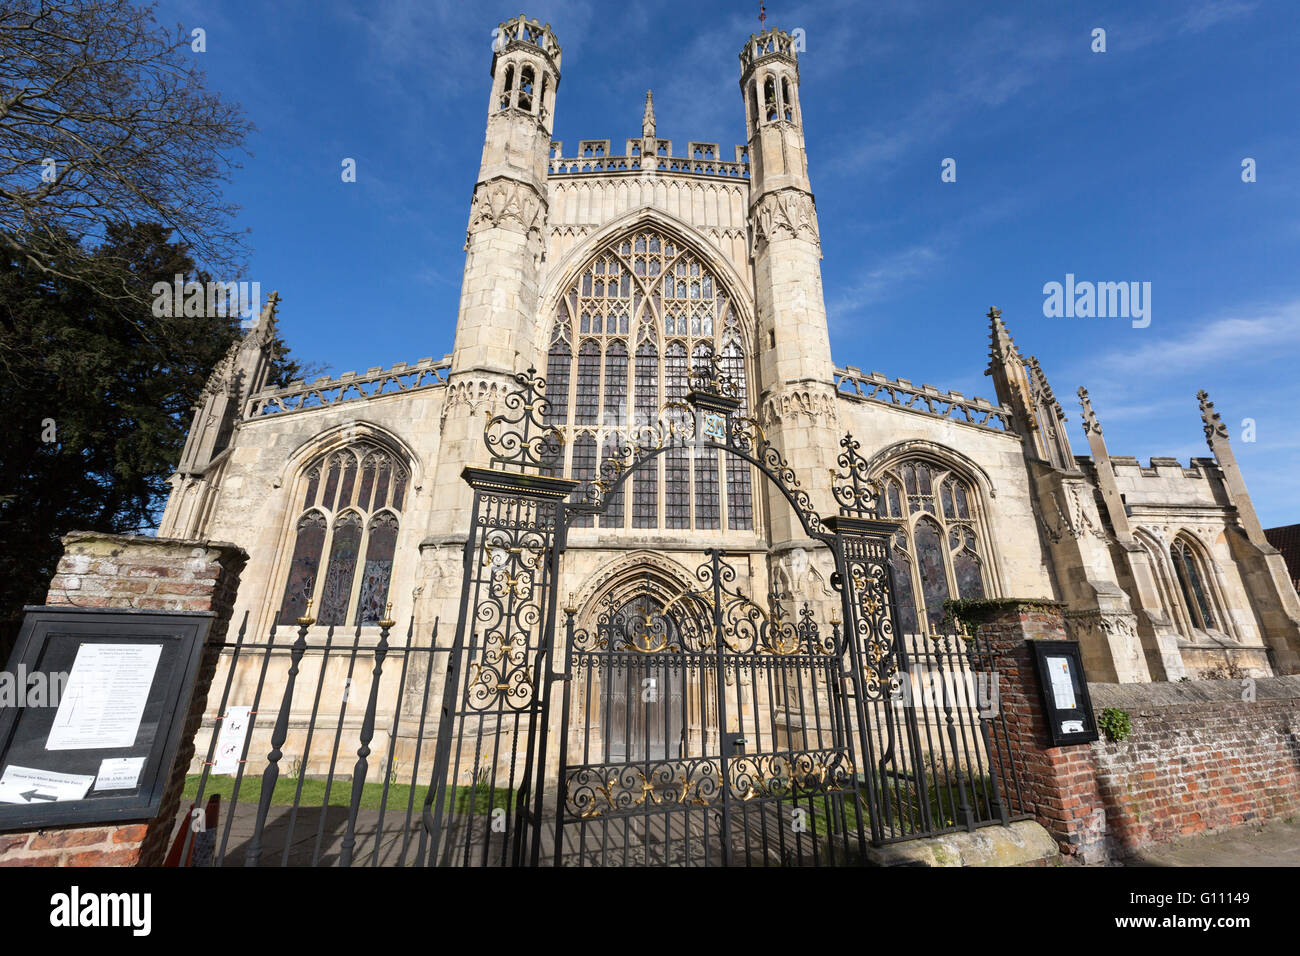 st-marys-church-facade-beverley-yorkshire-and-the-humber-england-G11149.jpg